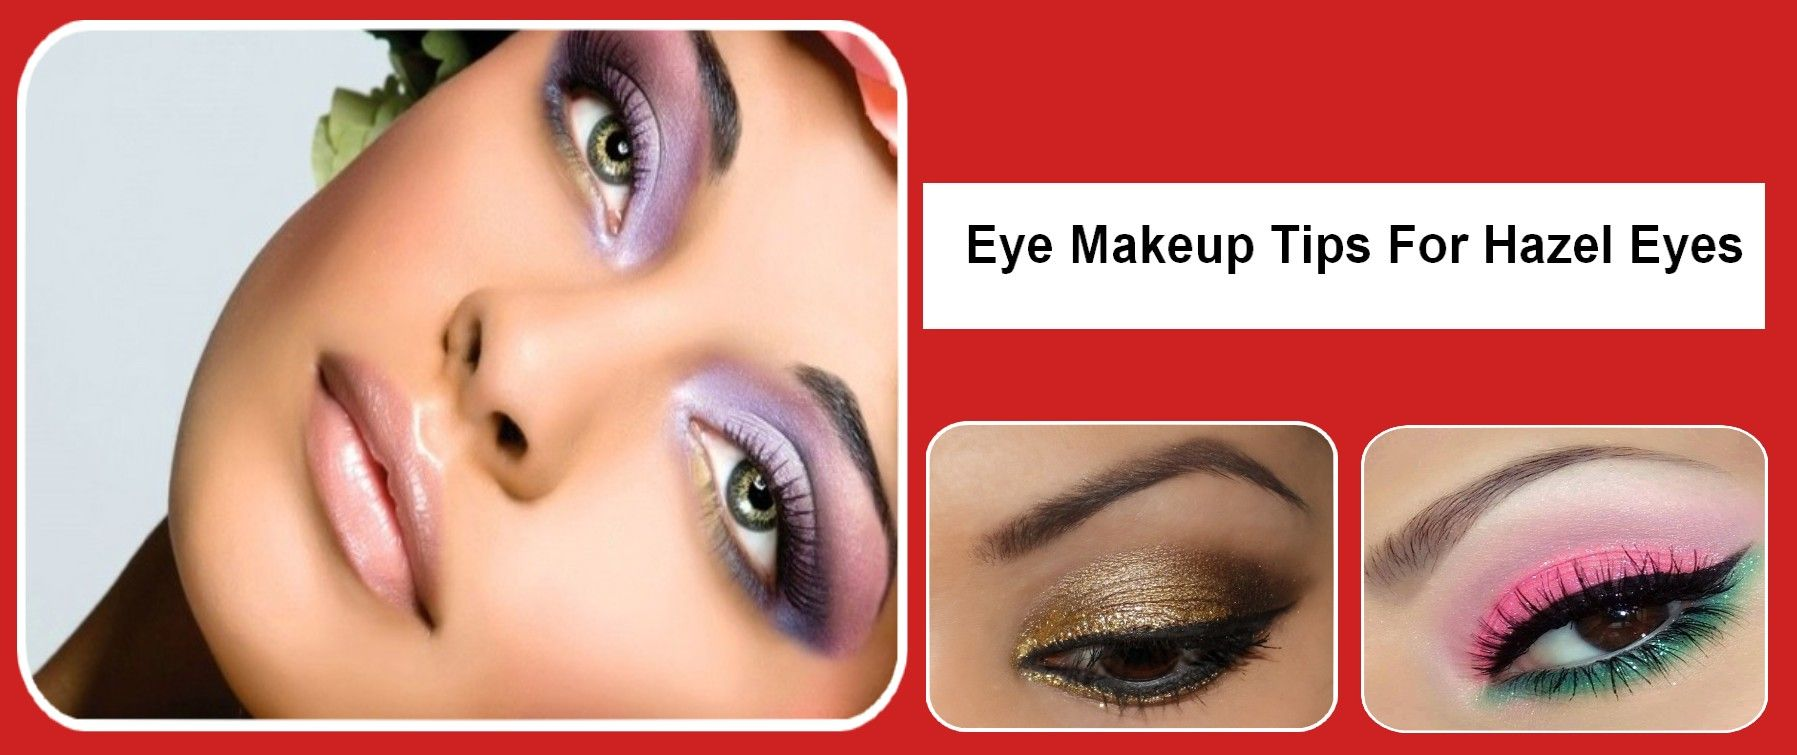 7 Eye Makeup Tips For Hazel Eyes Hazeeyesmakeup Besteyeshadow